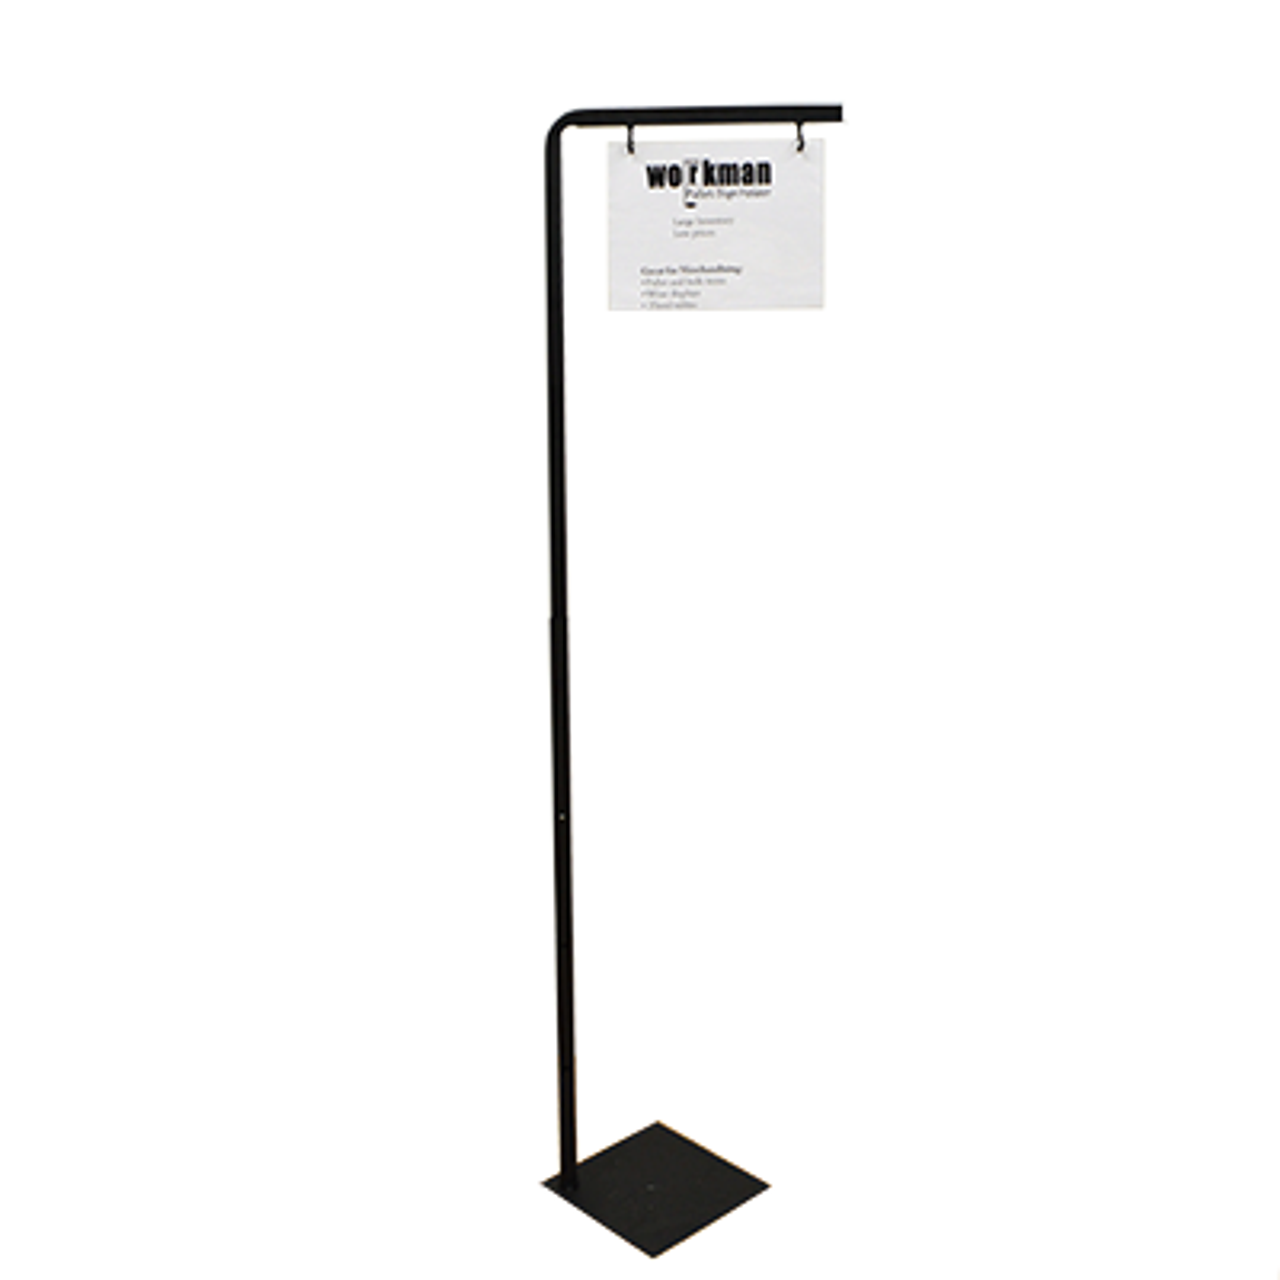 Pallet sign holder is perfect for bulk merchandising and displaying signs at retail locations.